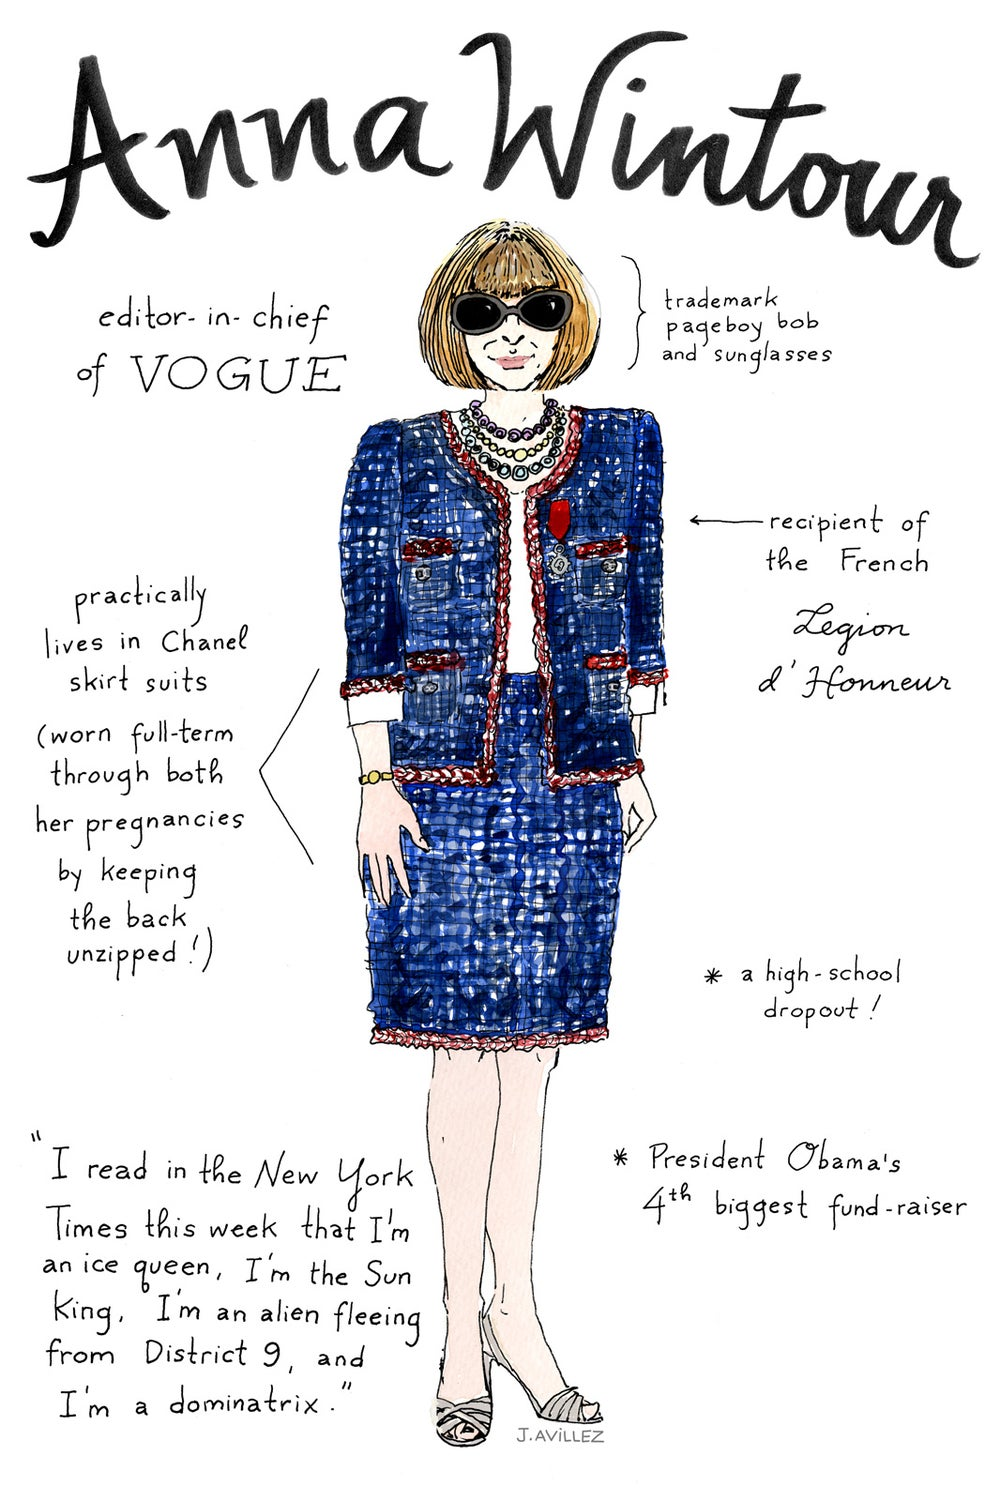 Anna Wintour — editor-in-chief